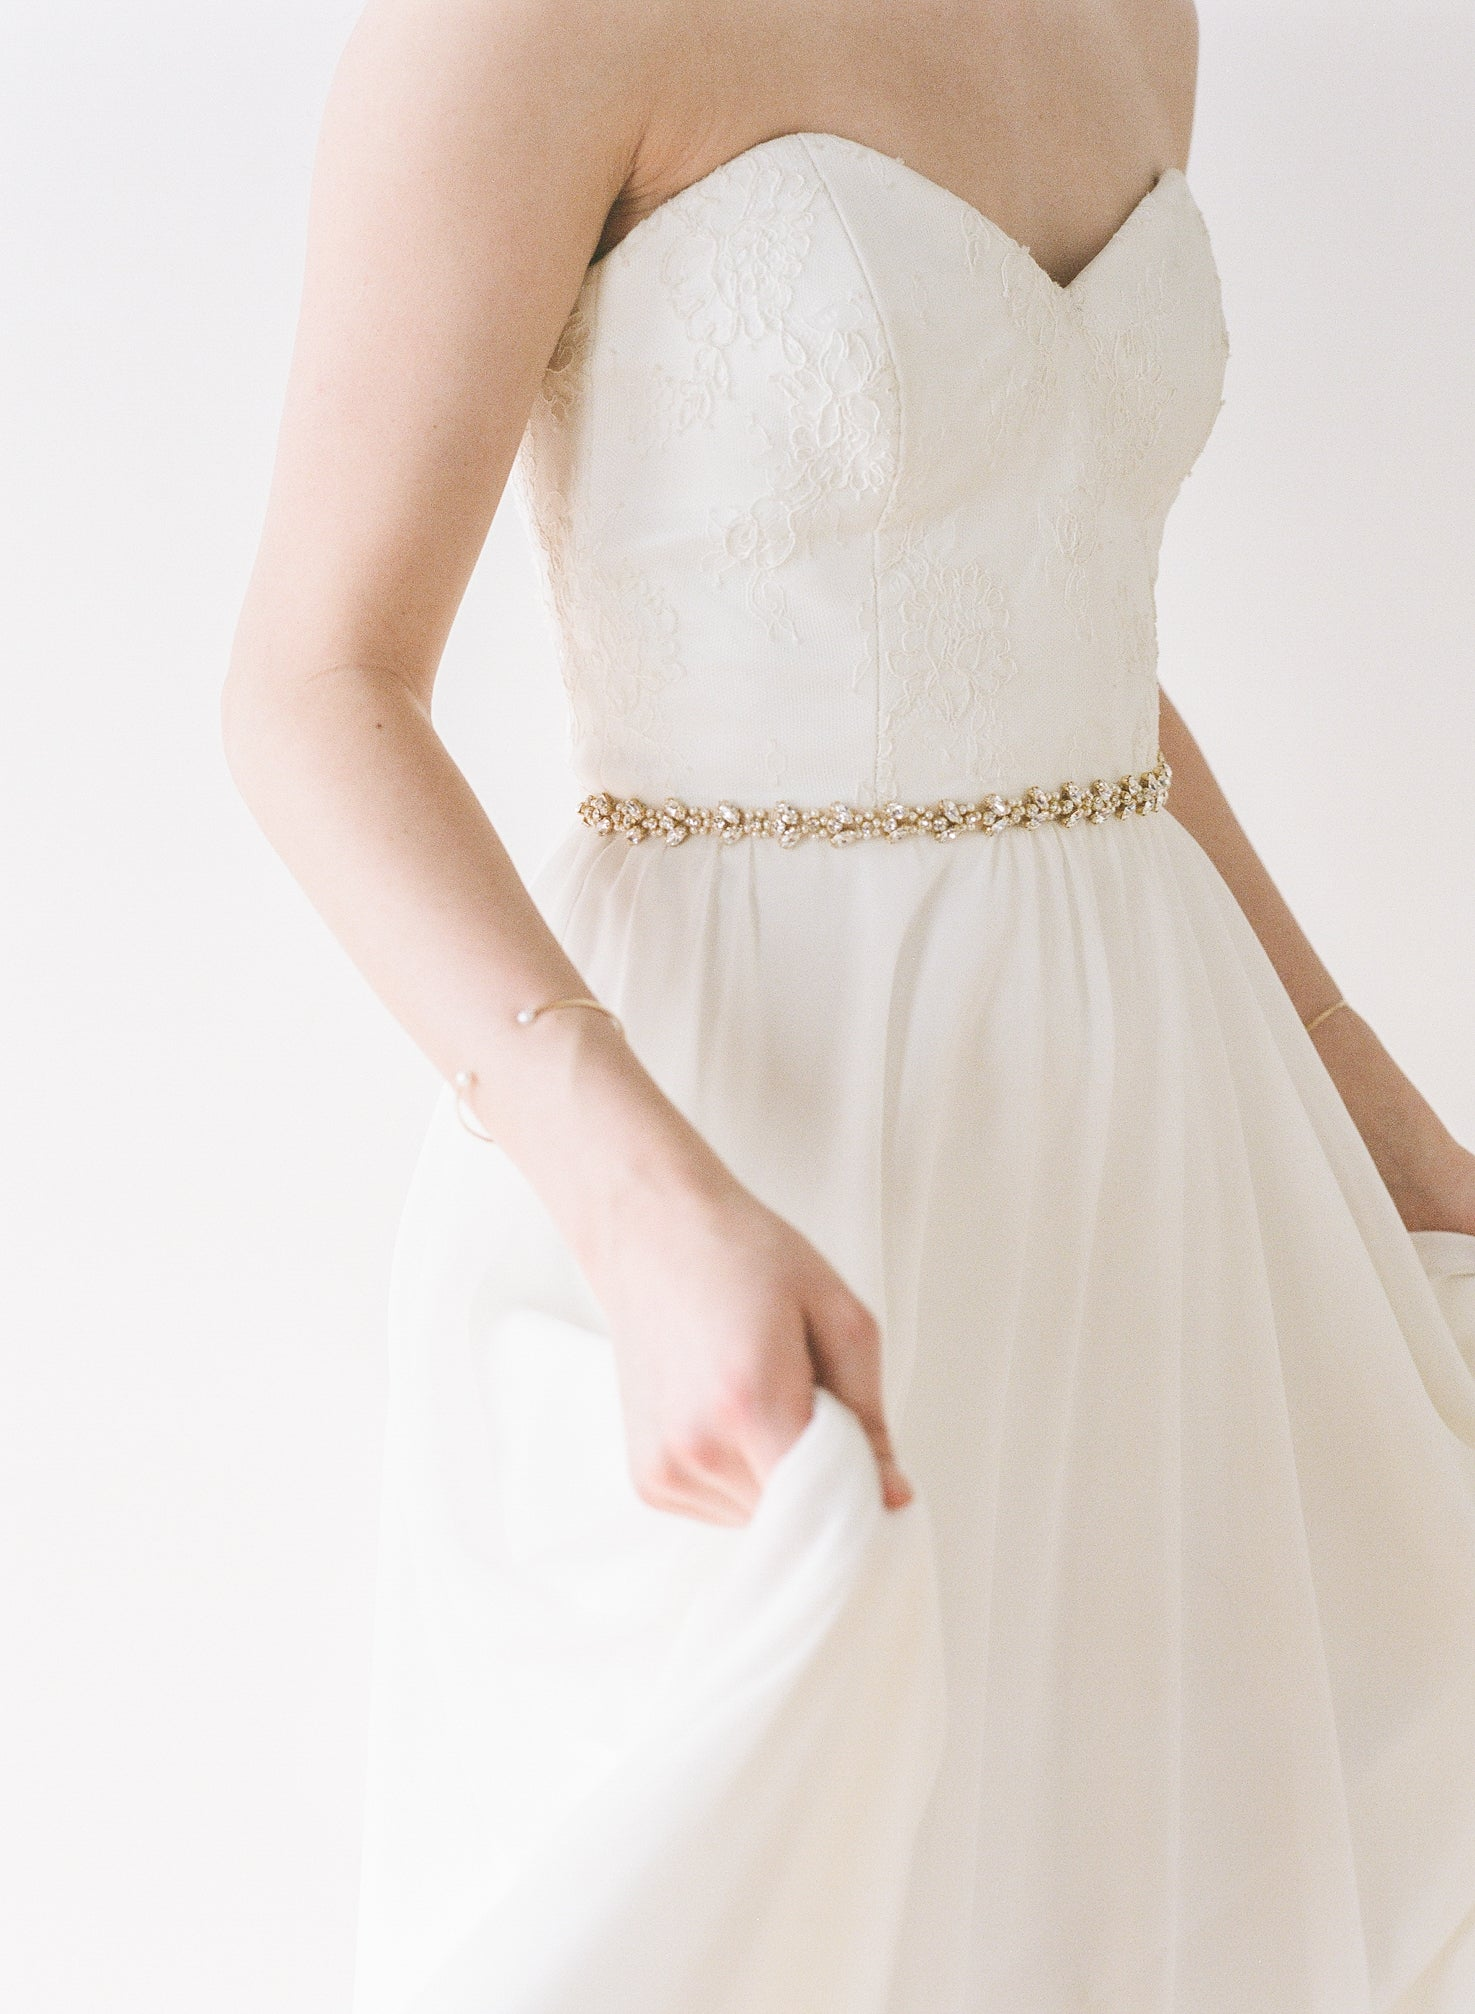 Wedding dress sash with crystals and pearls